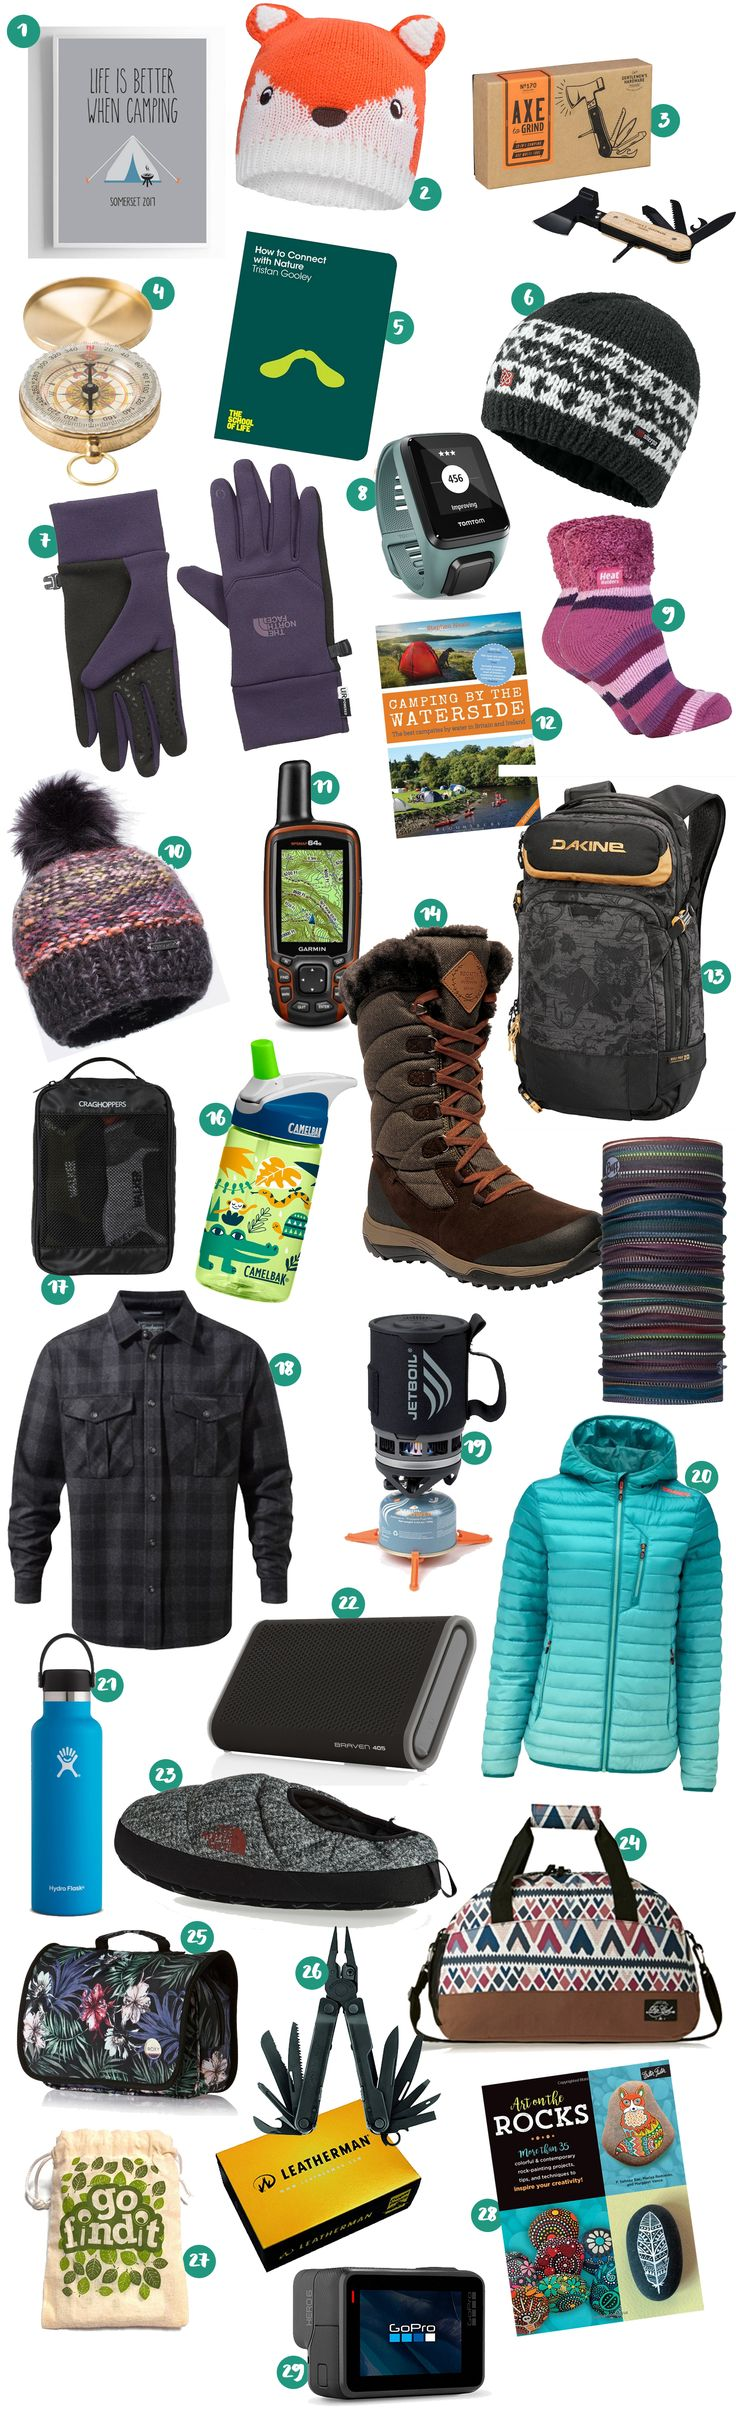 Christmas Gifts For Campesr Outdoor Lovers